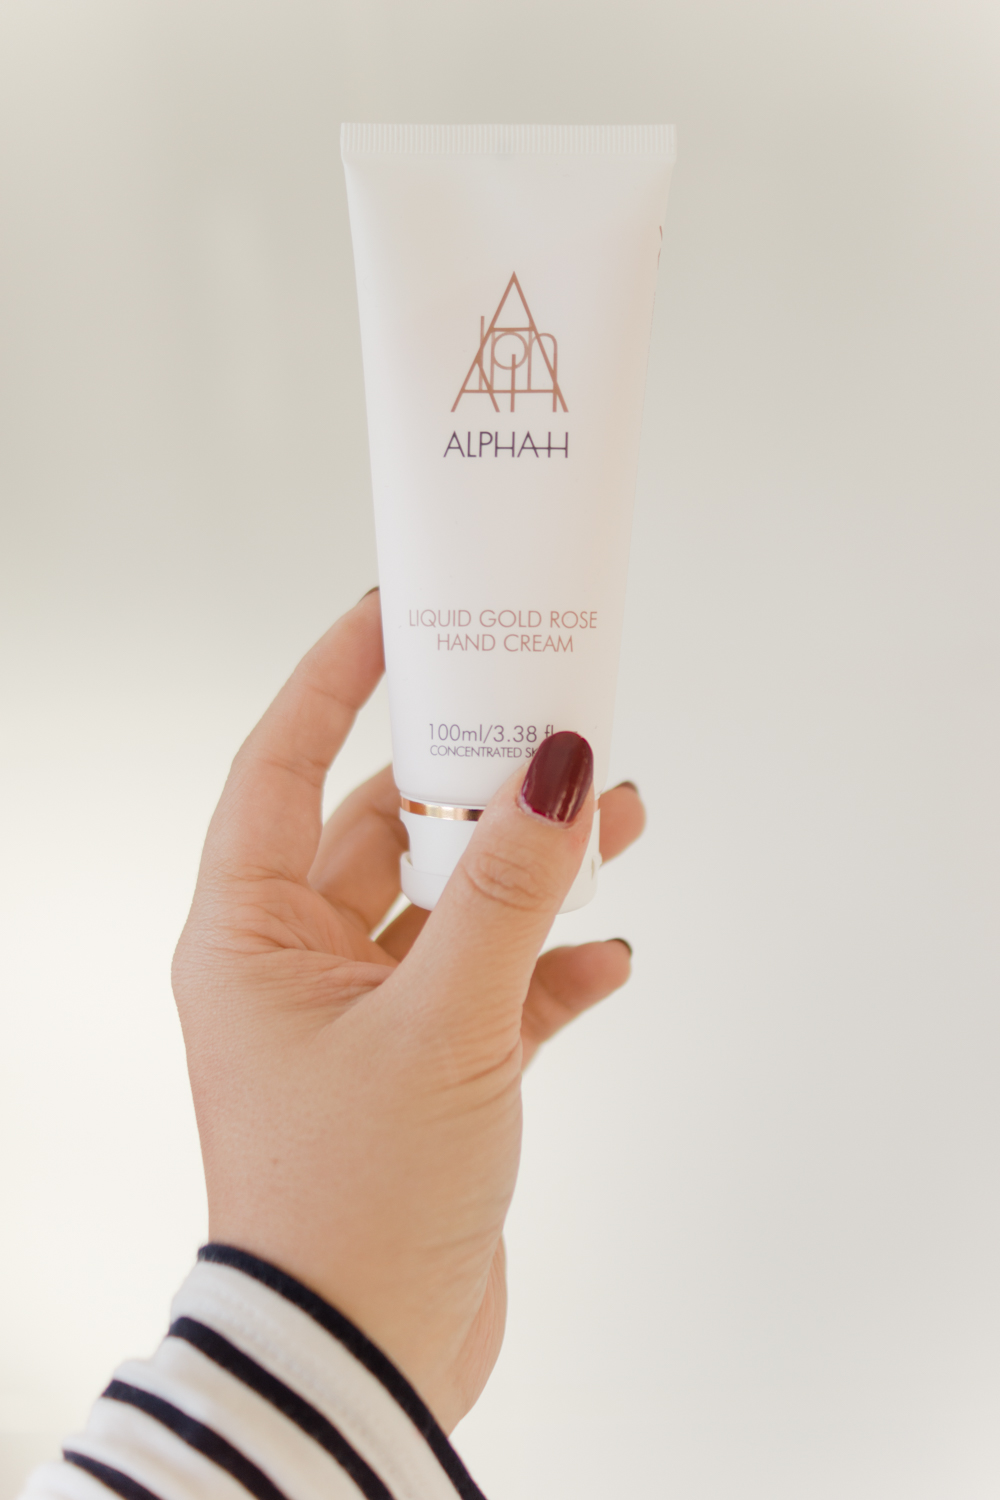 alpha-h-skincare-liquid-gold-rose-hand-cream-review-barely-there-beauty-blog